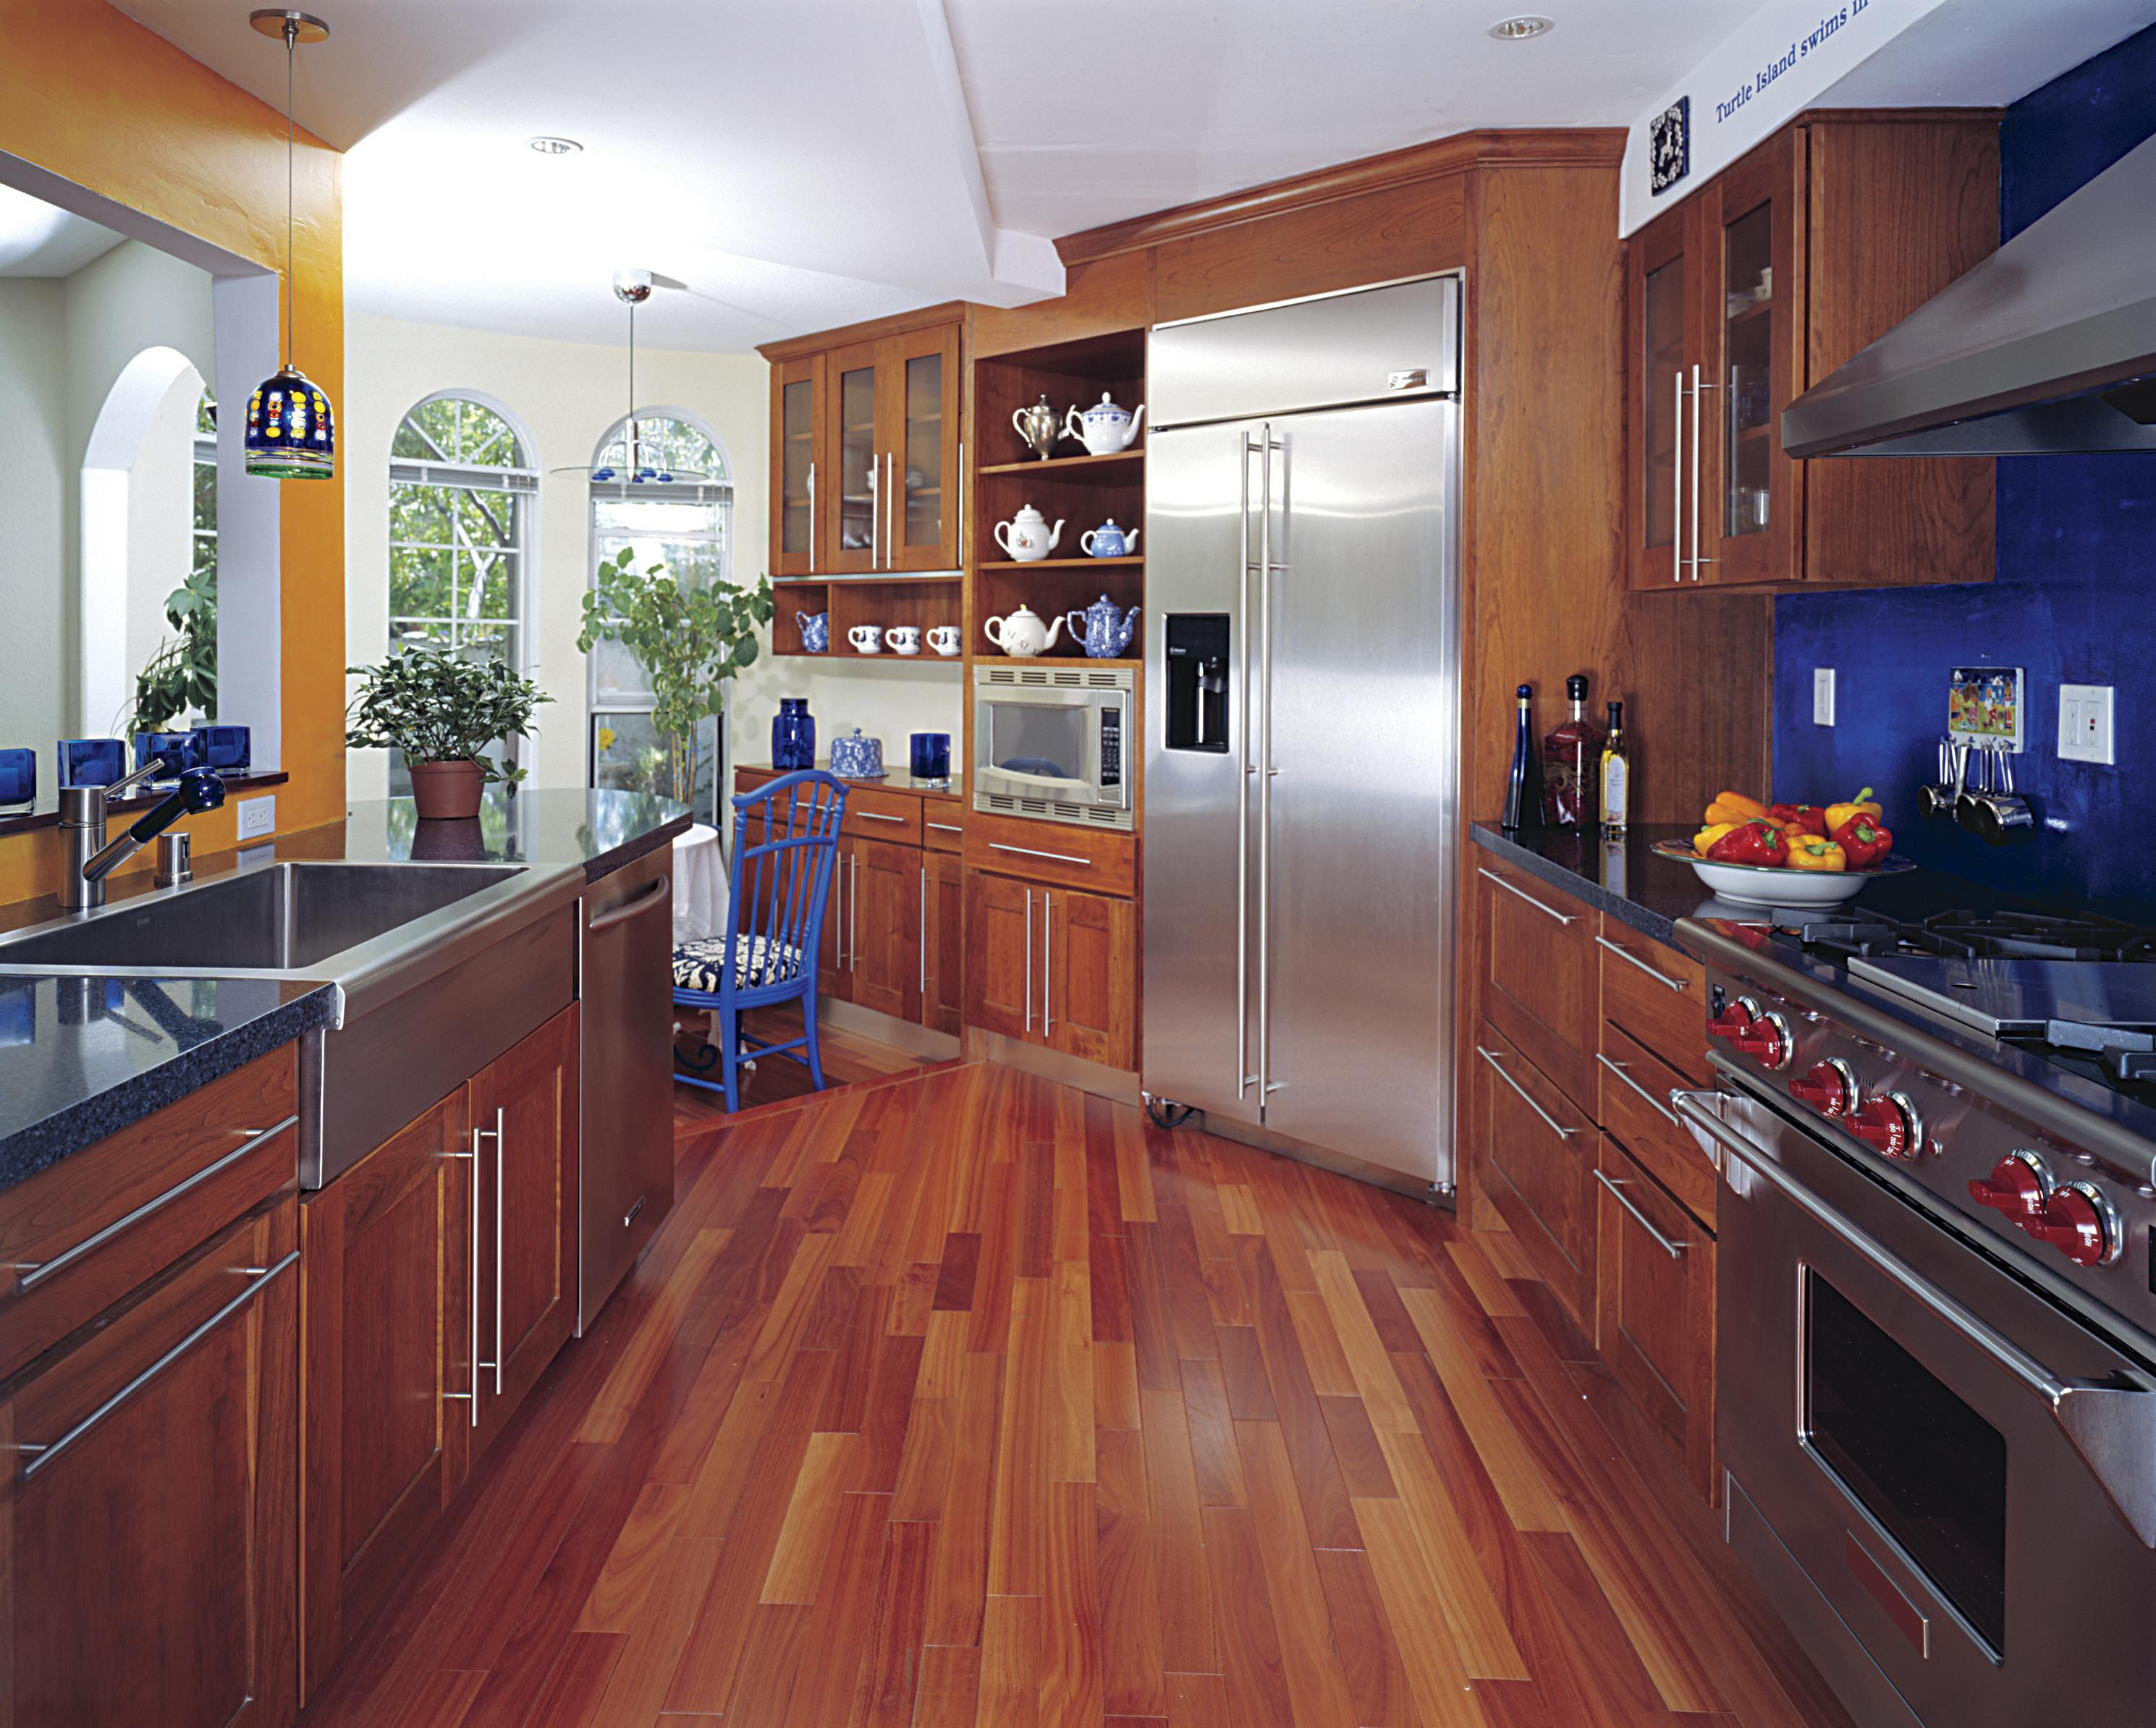 Acacia Prefinished Hardwood Flooring Of Hardwood Floor In A Kitchen is This Allowed In 186828472 56a49f3a5f9b58b7d0d7e142